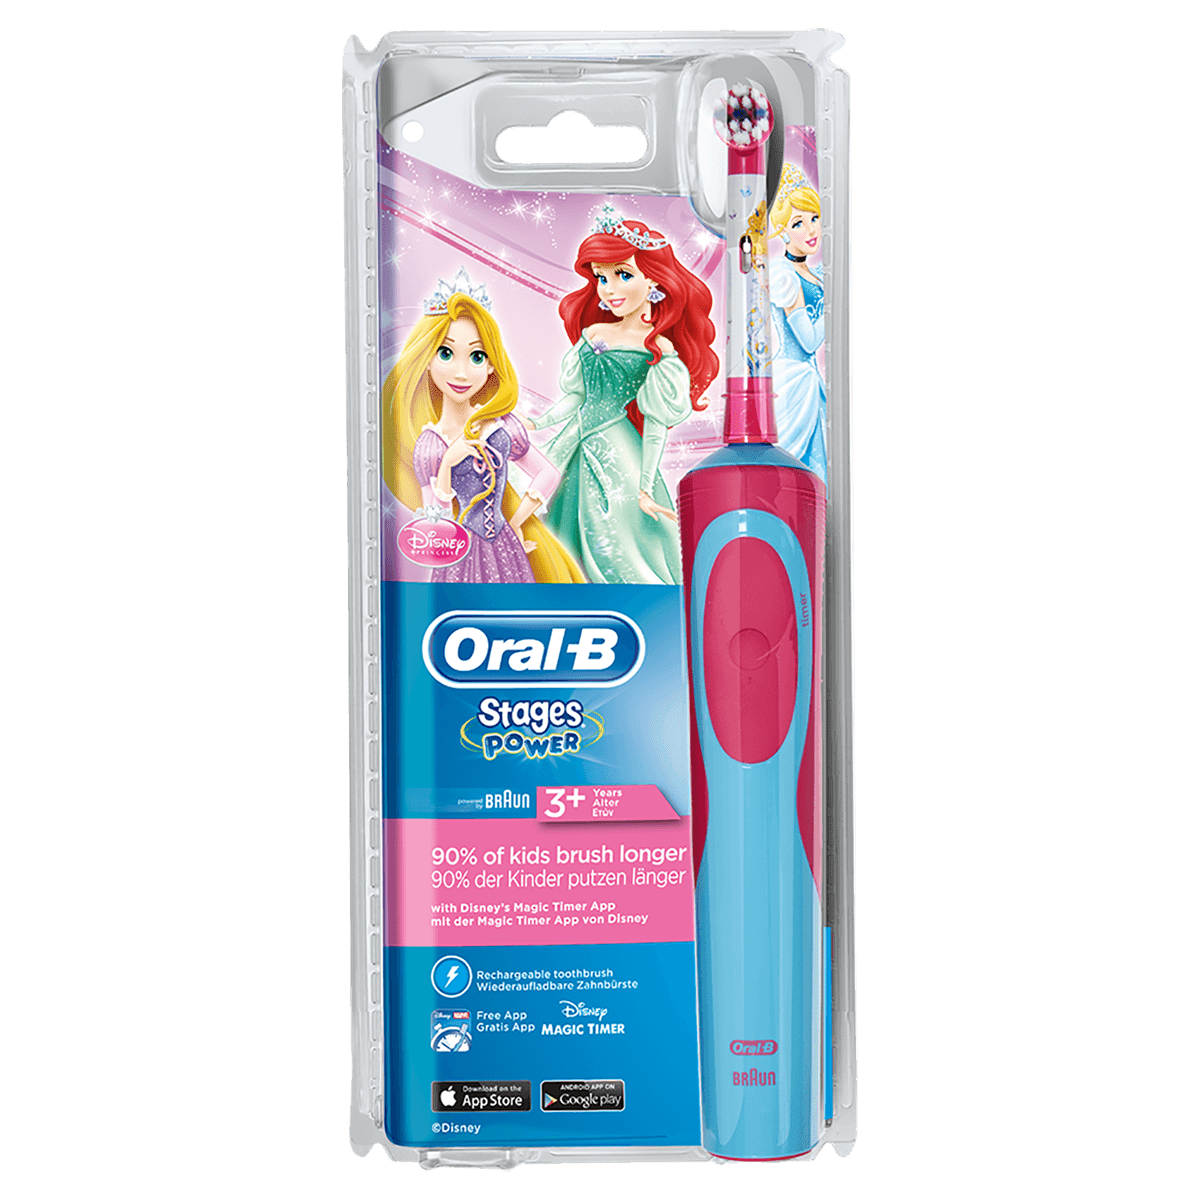 Oral-B Stages Power Princess Elektrische Zahnbürste